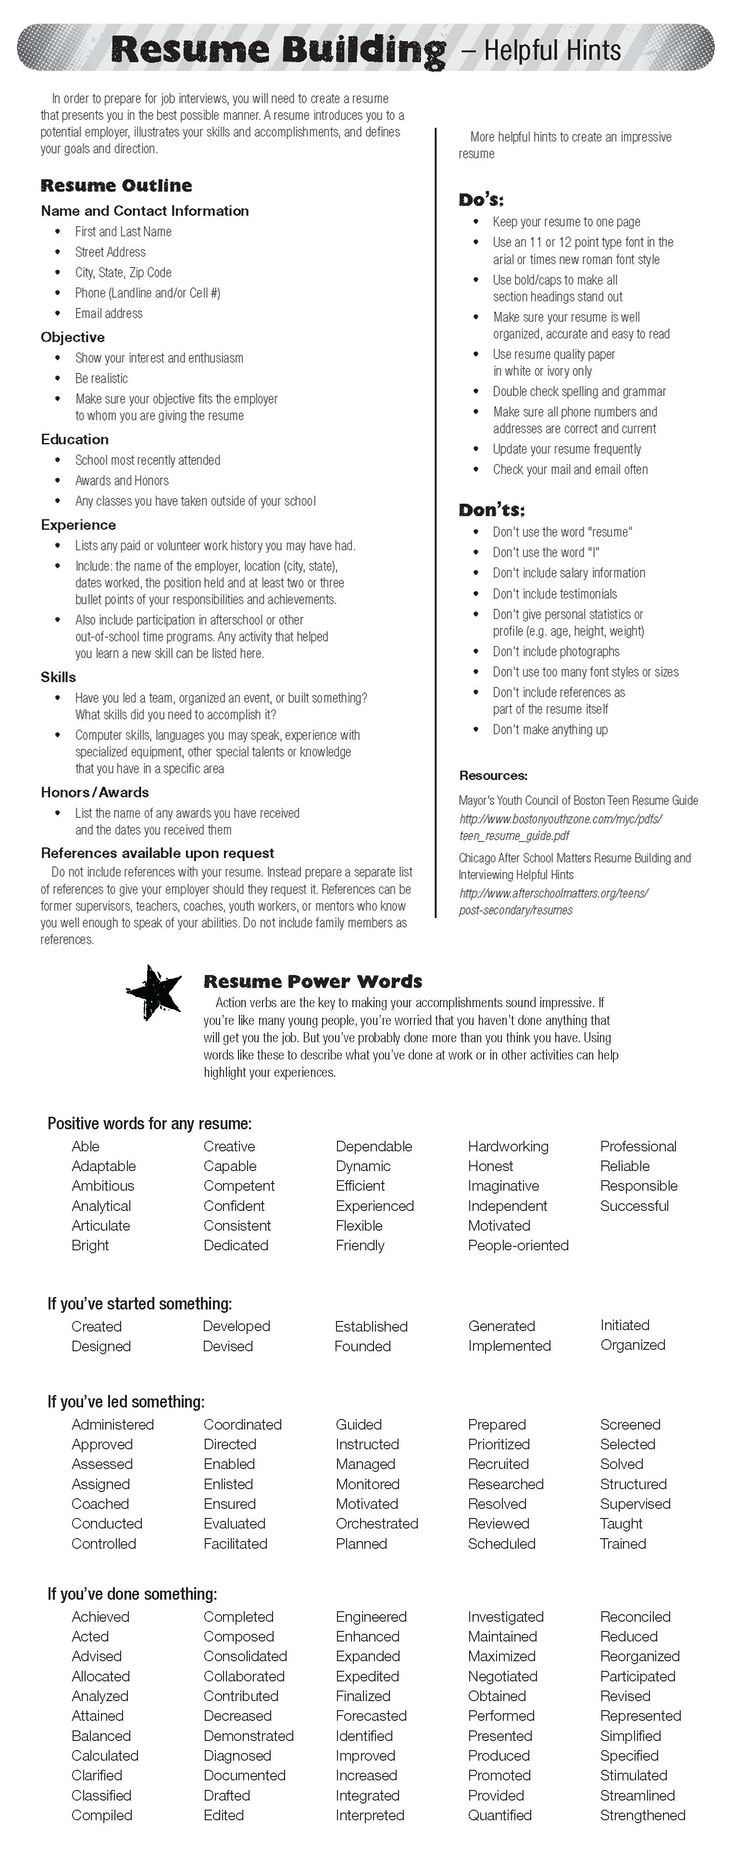 Opposenewapstandardsus  Nice  Ideas About Resume On Pinterest  Cv Format Resume Cv And  With Fascinating  Ideas About Resume On Pinterest  Cv Format Resume Cv And Resume Templates With Attractive What To Write On Resume Also Flight Attendant Resume Sample In Addition Resume For Grocery Store And Management Experience Resume As Well As Attractive Resume Additionally Massage Therapist Resume Sample From Pinterestcom With Opposenewapstandardsus  Fascinating  Ideas About Resume On Pinterest  Cv Format Resume Cv And  With Attractive  Ideas About Resume On Pinterest  Cv Format Resume Cv And Resume Templates And Nice What To Write On Resume Also Flight Attendant Resume Sample In Addition Resume For Grocery Store From Pinterestcom